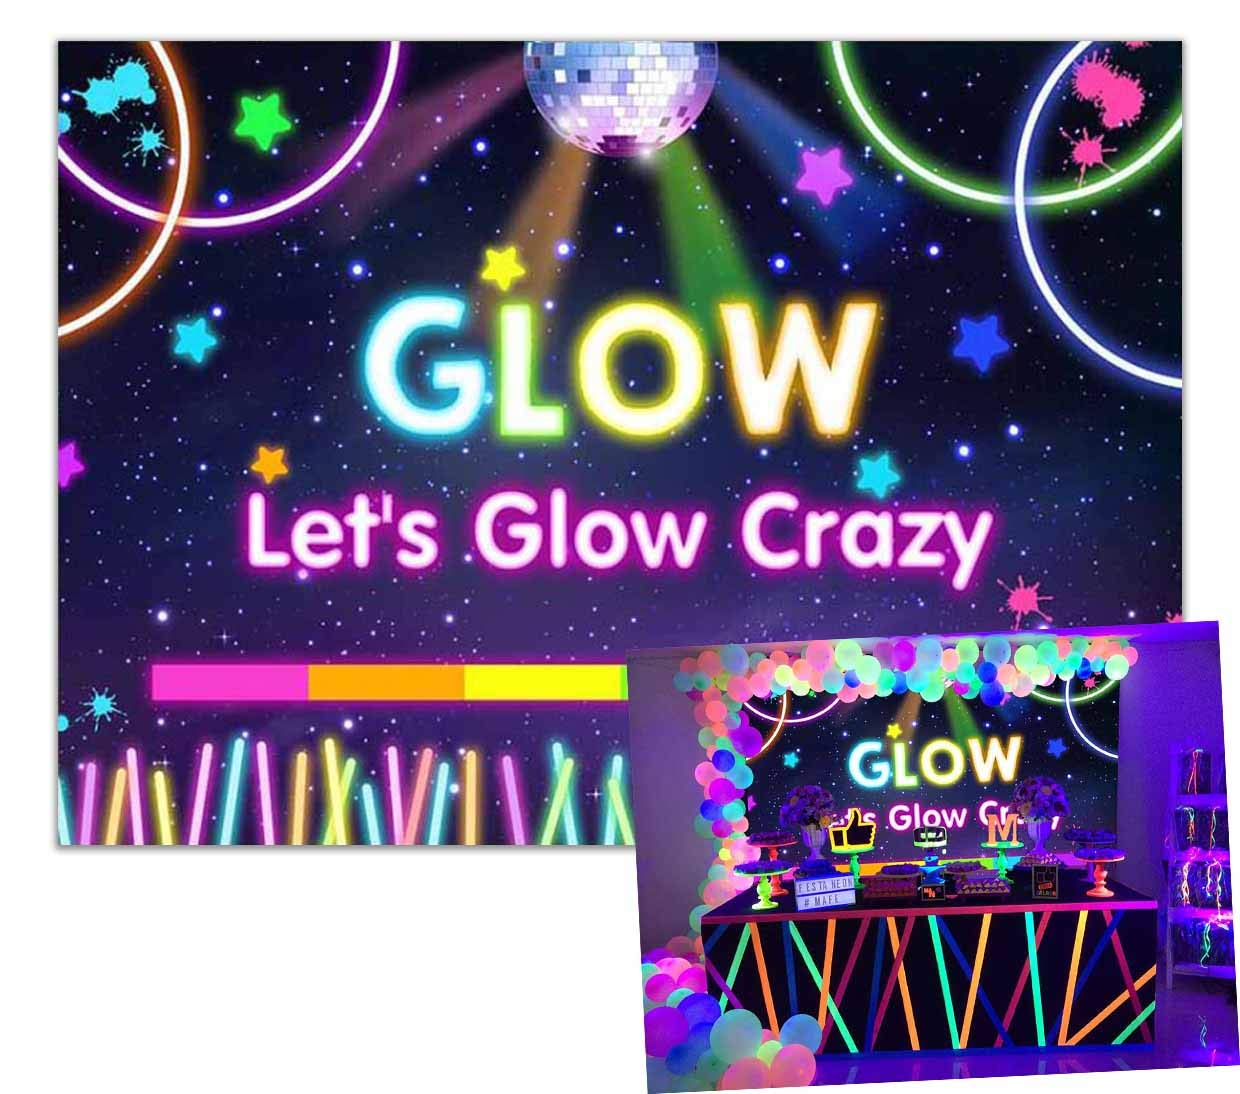 Allenjoy 7x5ft Lets Glow Crazy Backdrop Neon Blacknight Colorful Laser Aperture Splatter Photography Backgrounds Disco Bance Birthday Party Banner Decorations Photo Booth Props